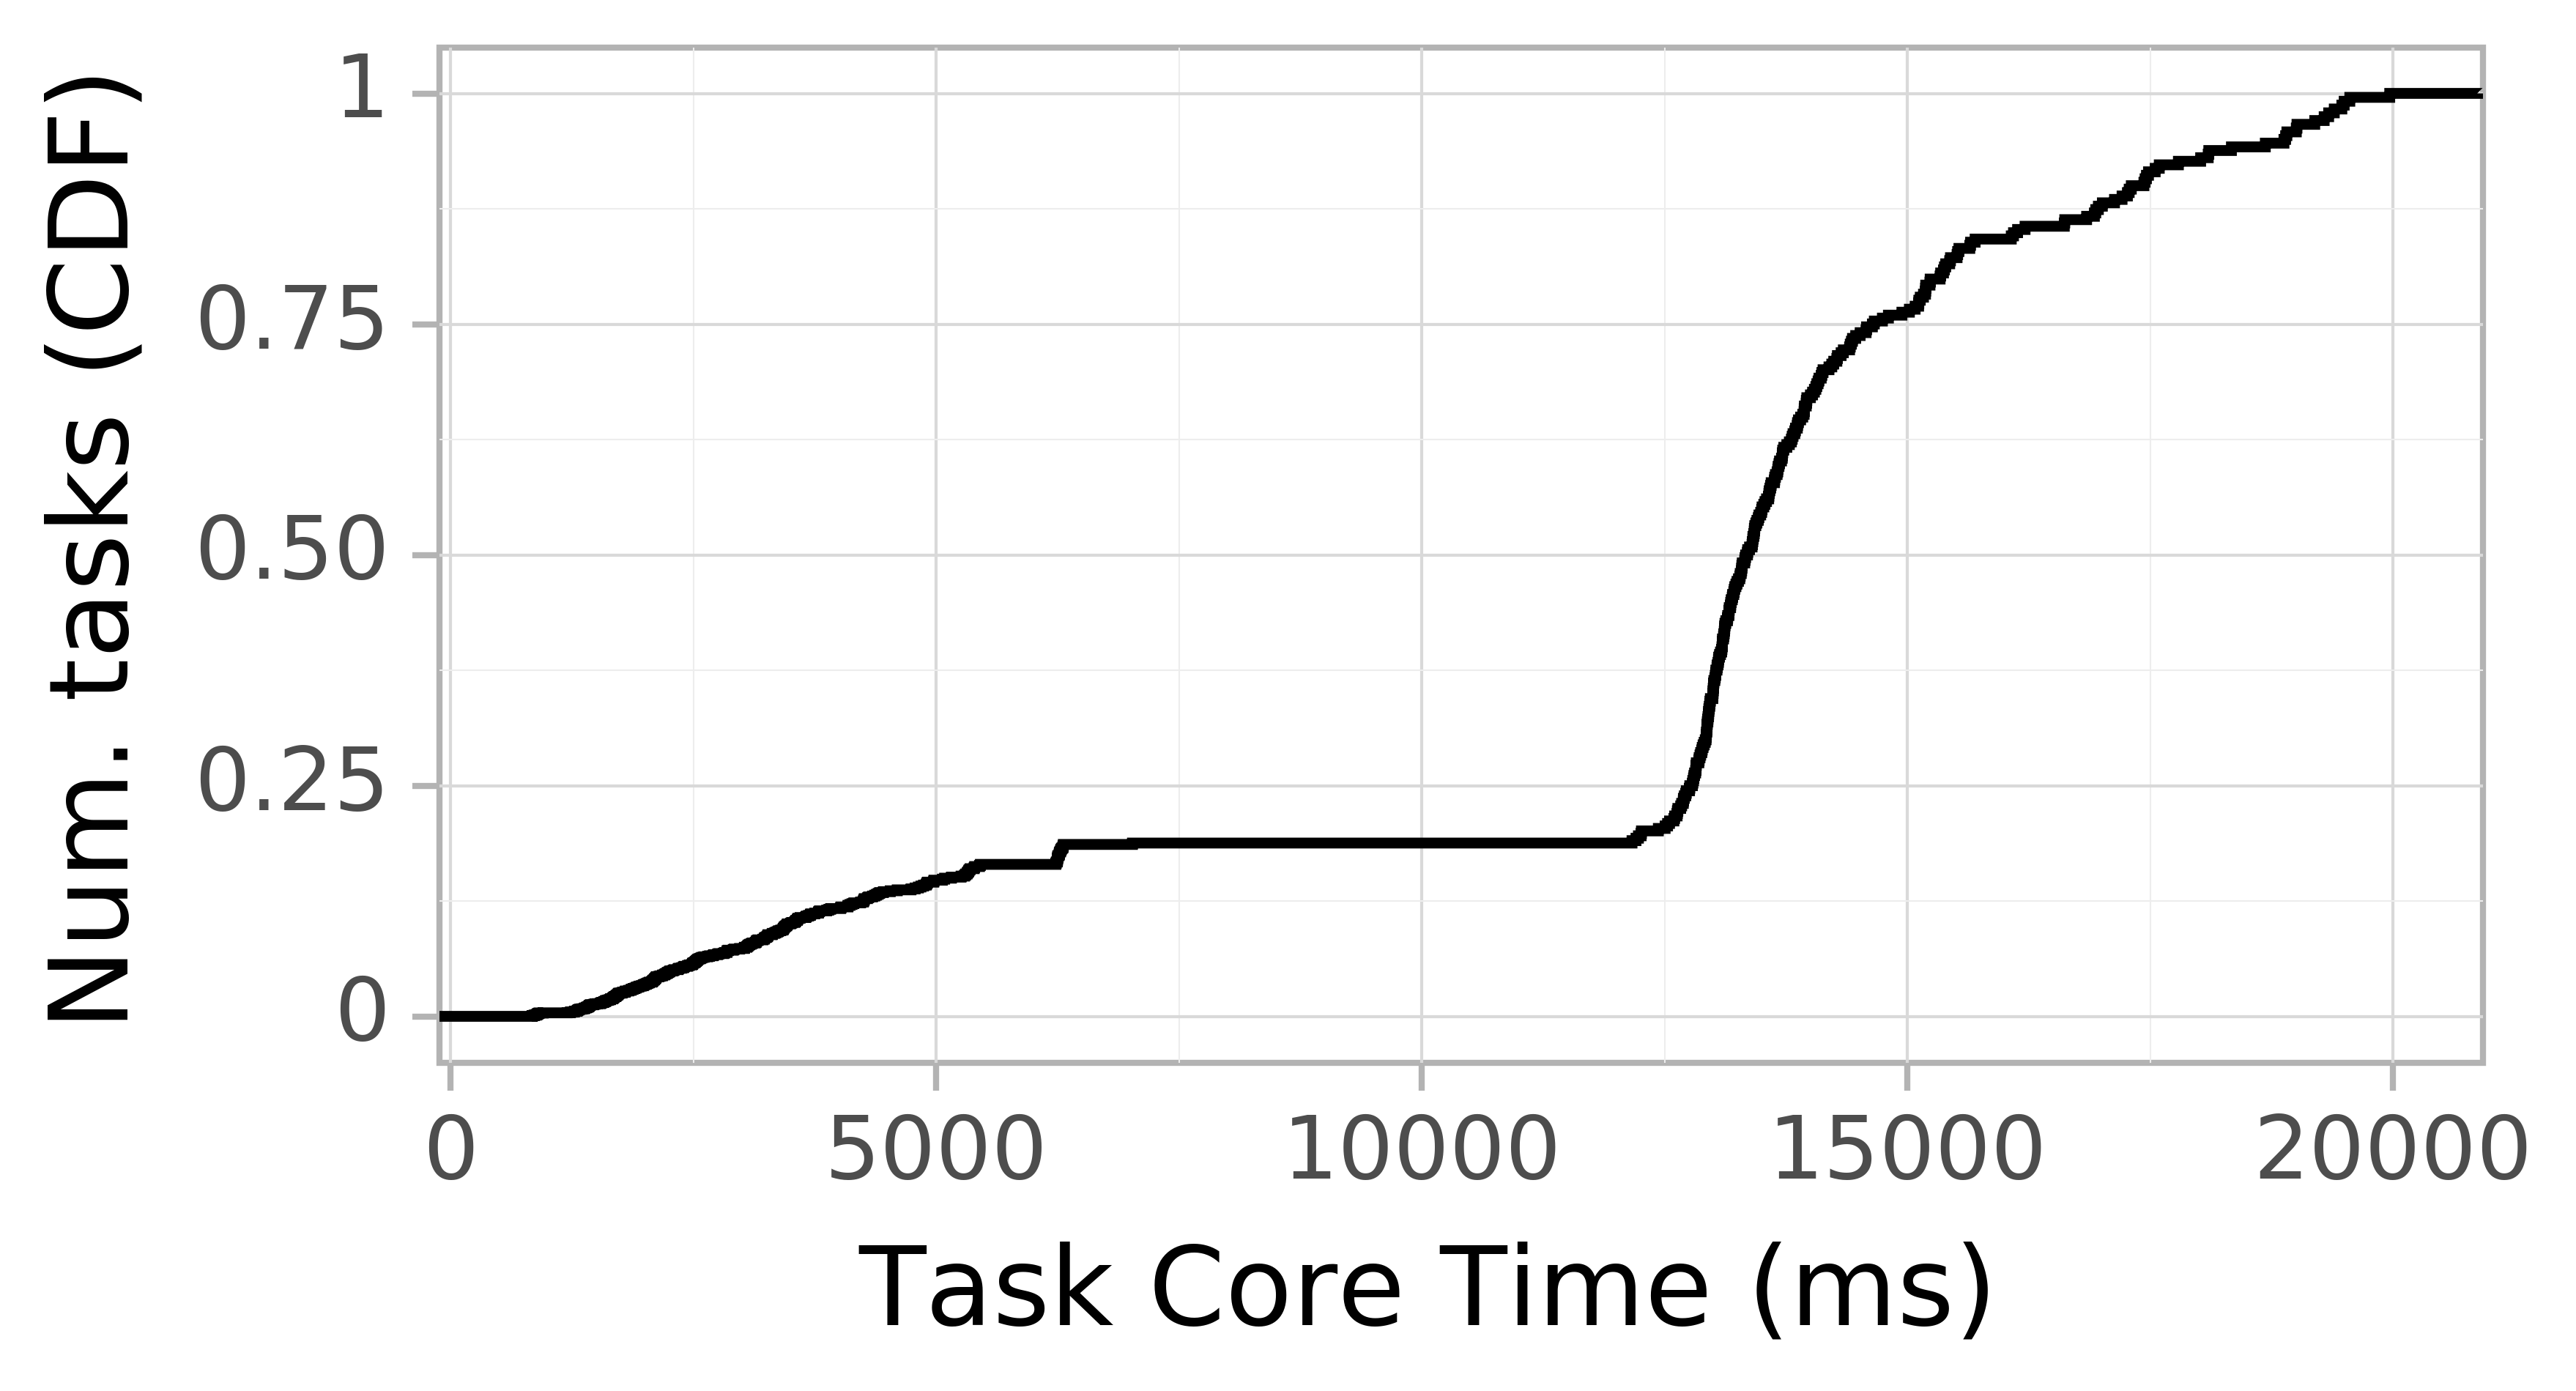 task resource time CDF graph for the askalon-new_ee12 trace.